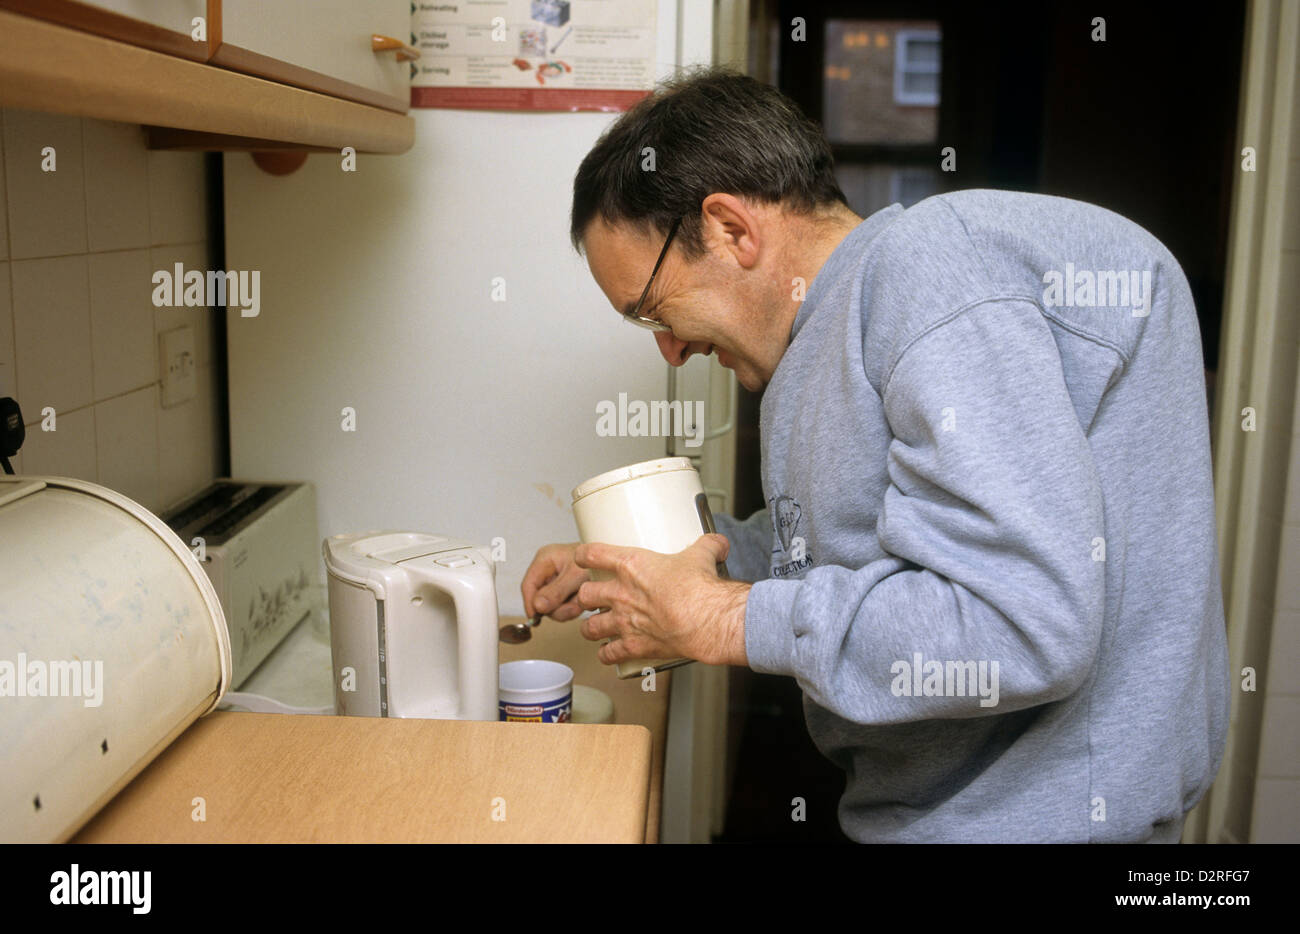 Disabled man making a cup of tea in the kitchen - Stock Image